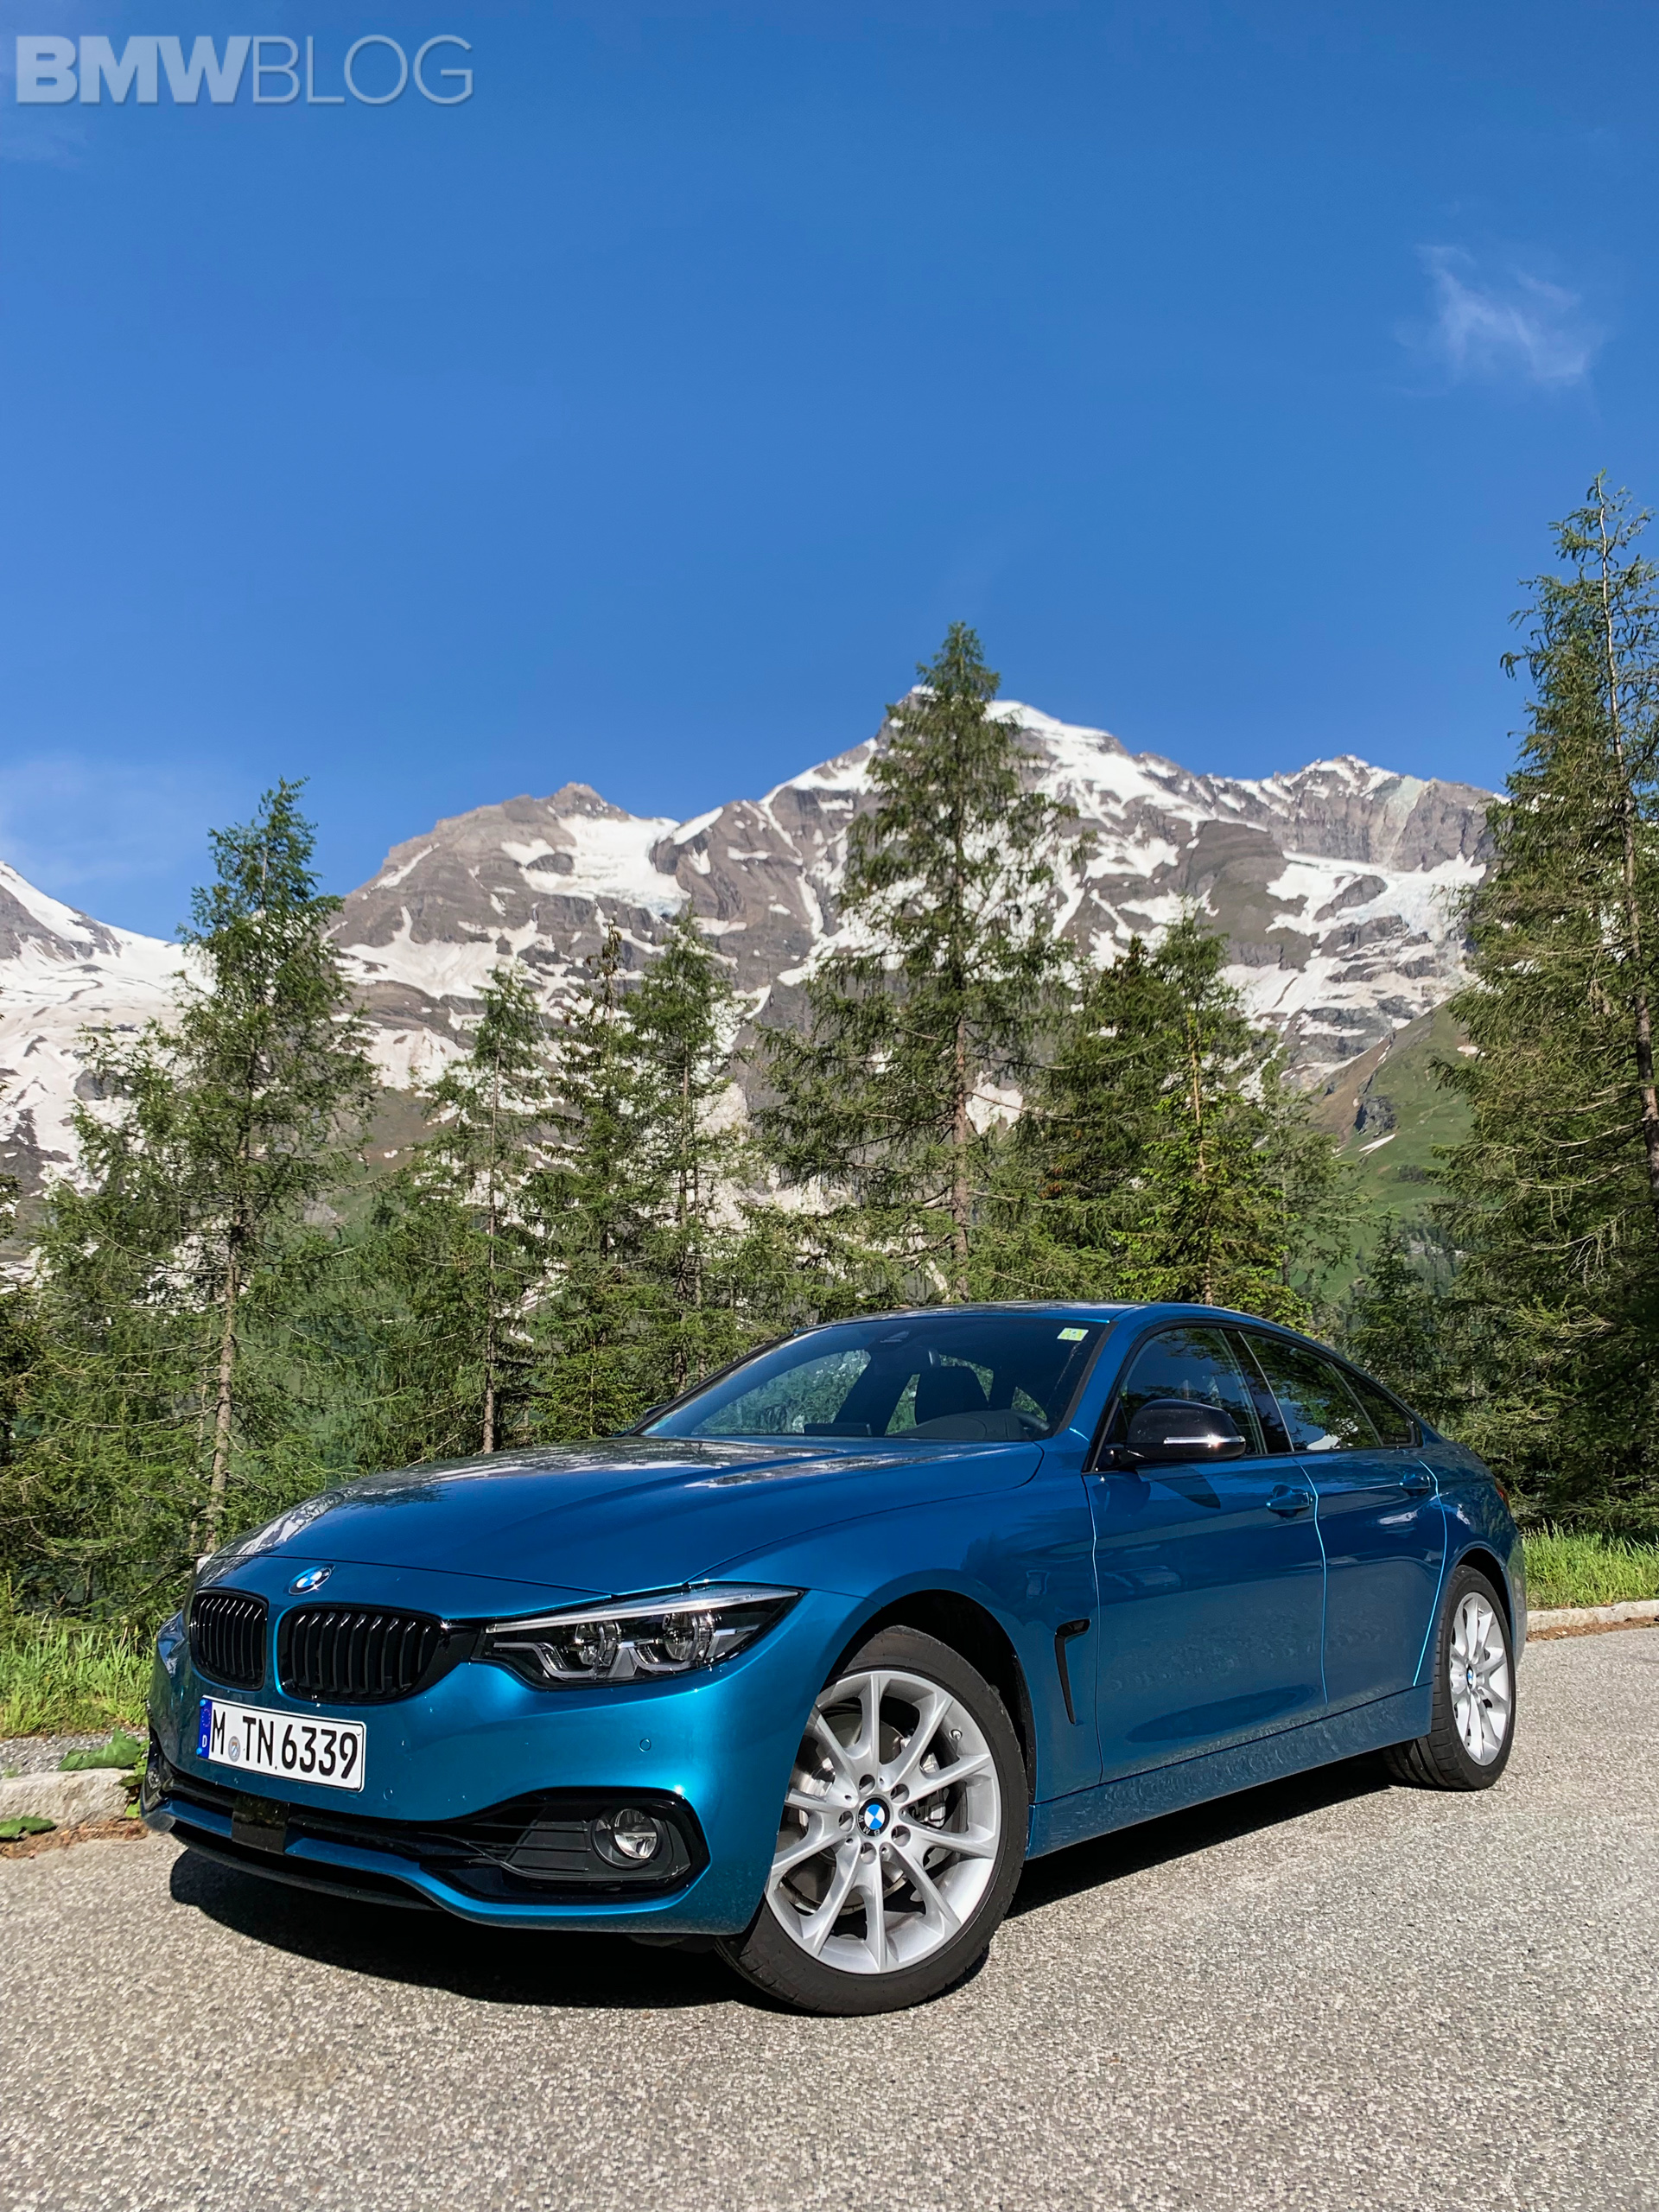 TEST DRIVE: 2019 BMW 430d Gran Coupe - A Wolf In Sheep's